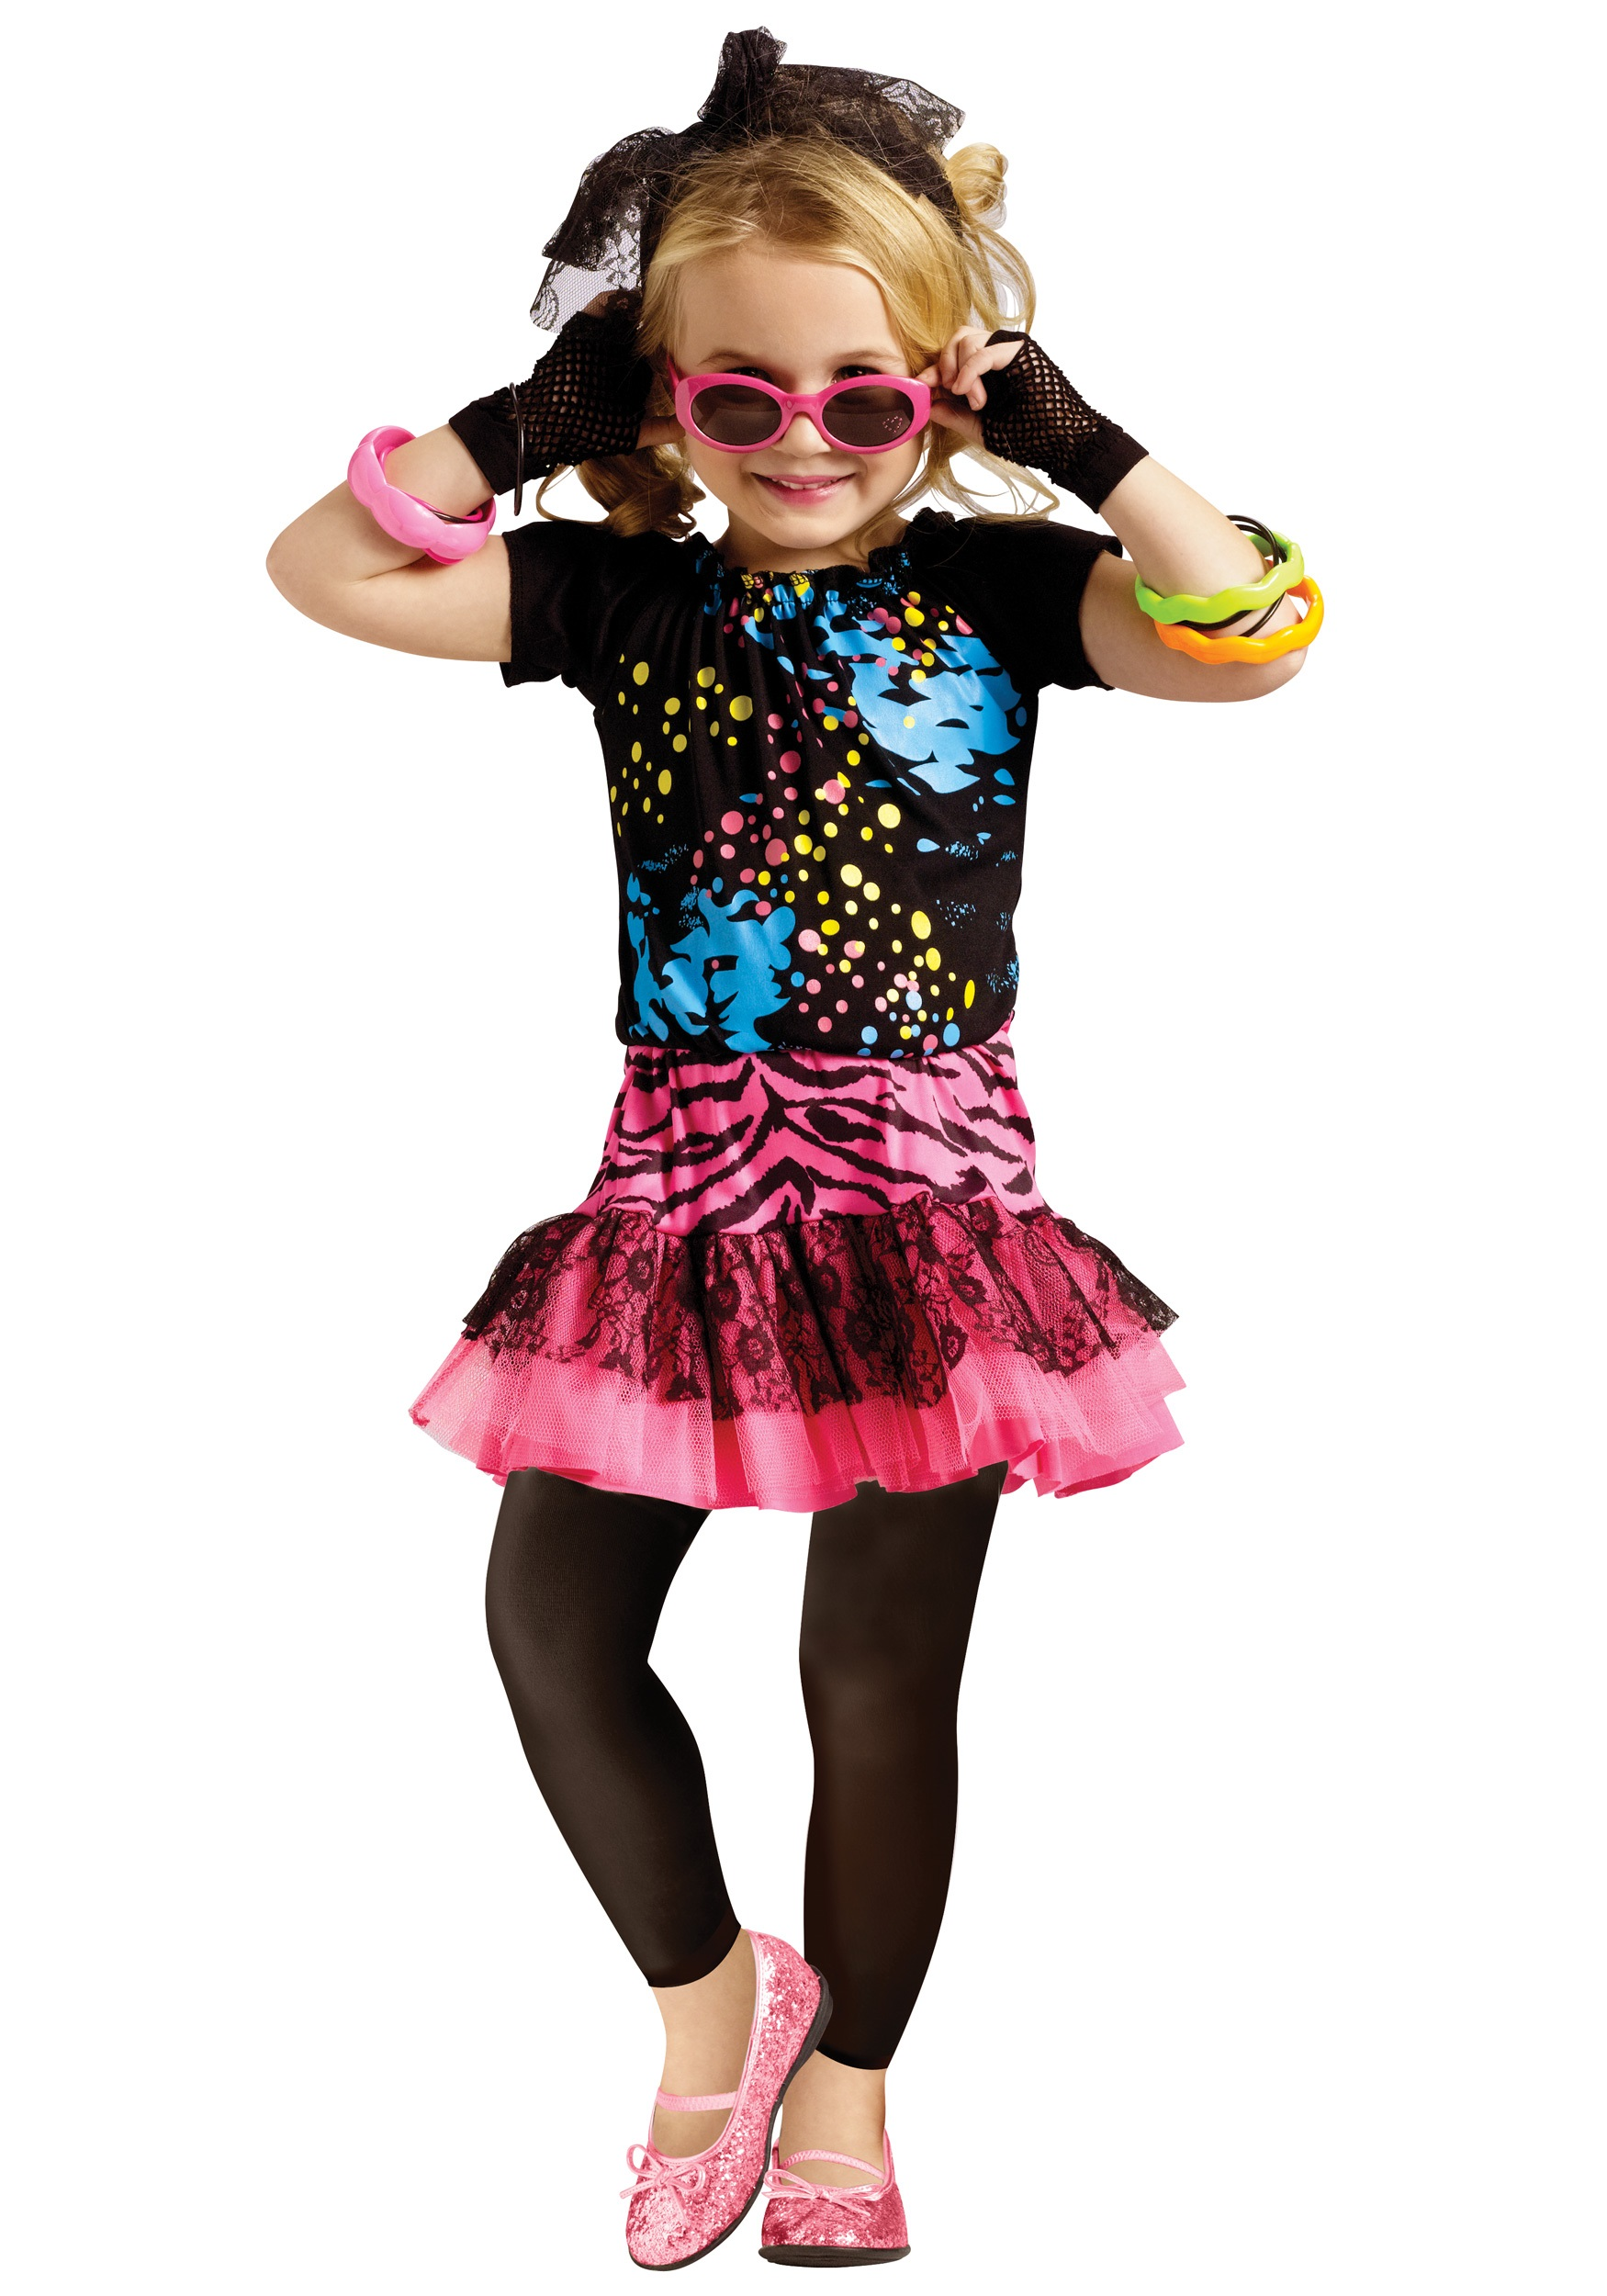 378a0fd1f8 80s Pop Party Toddler Costume - Halloween Costume Ideas 2018